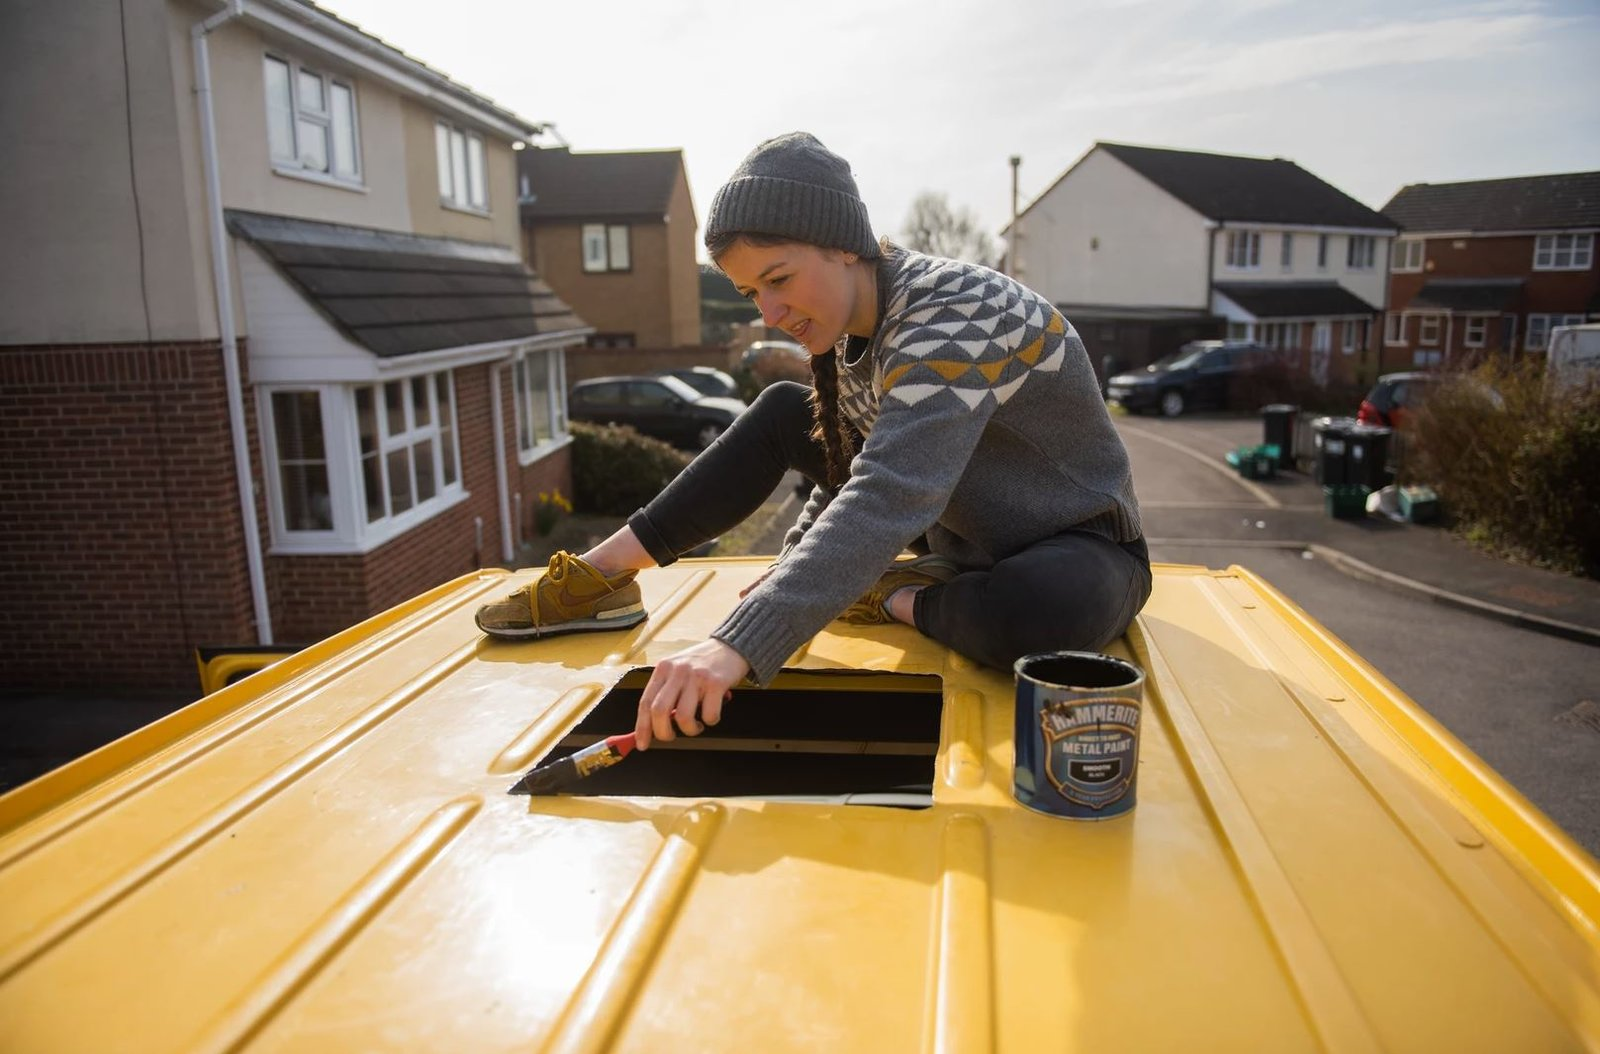 Charlie preps the roof of the van for the new skylight.  Photo 5 of 22 in Budget Breakdown: A Climbing Couple Turn a Delivery Van Into an Adventure Mobile for $8.5K